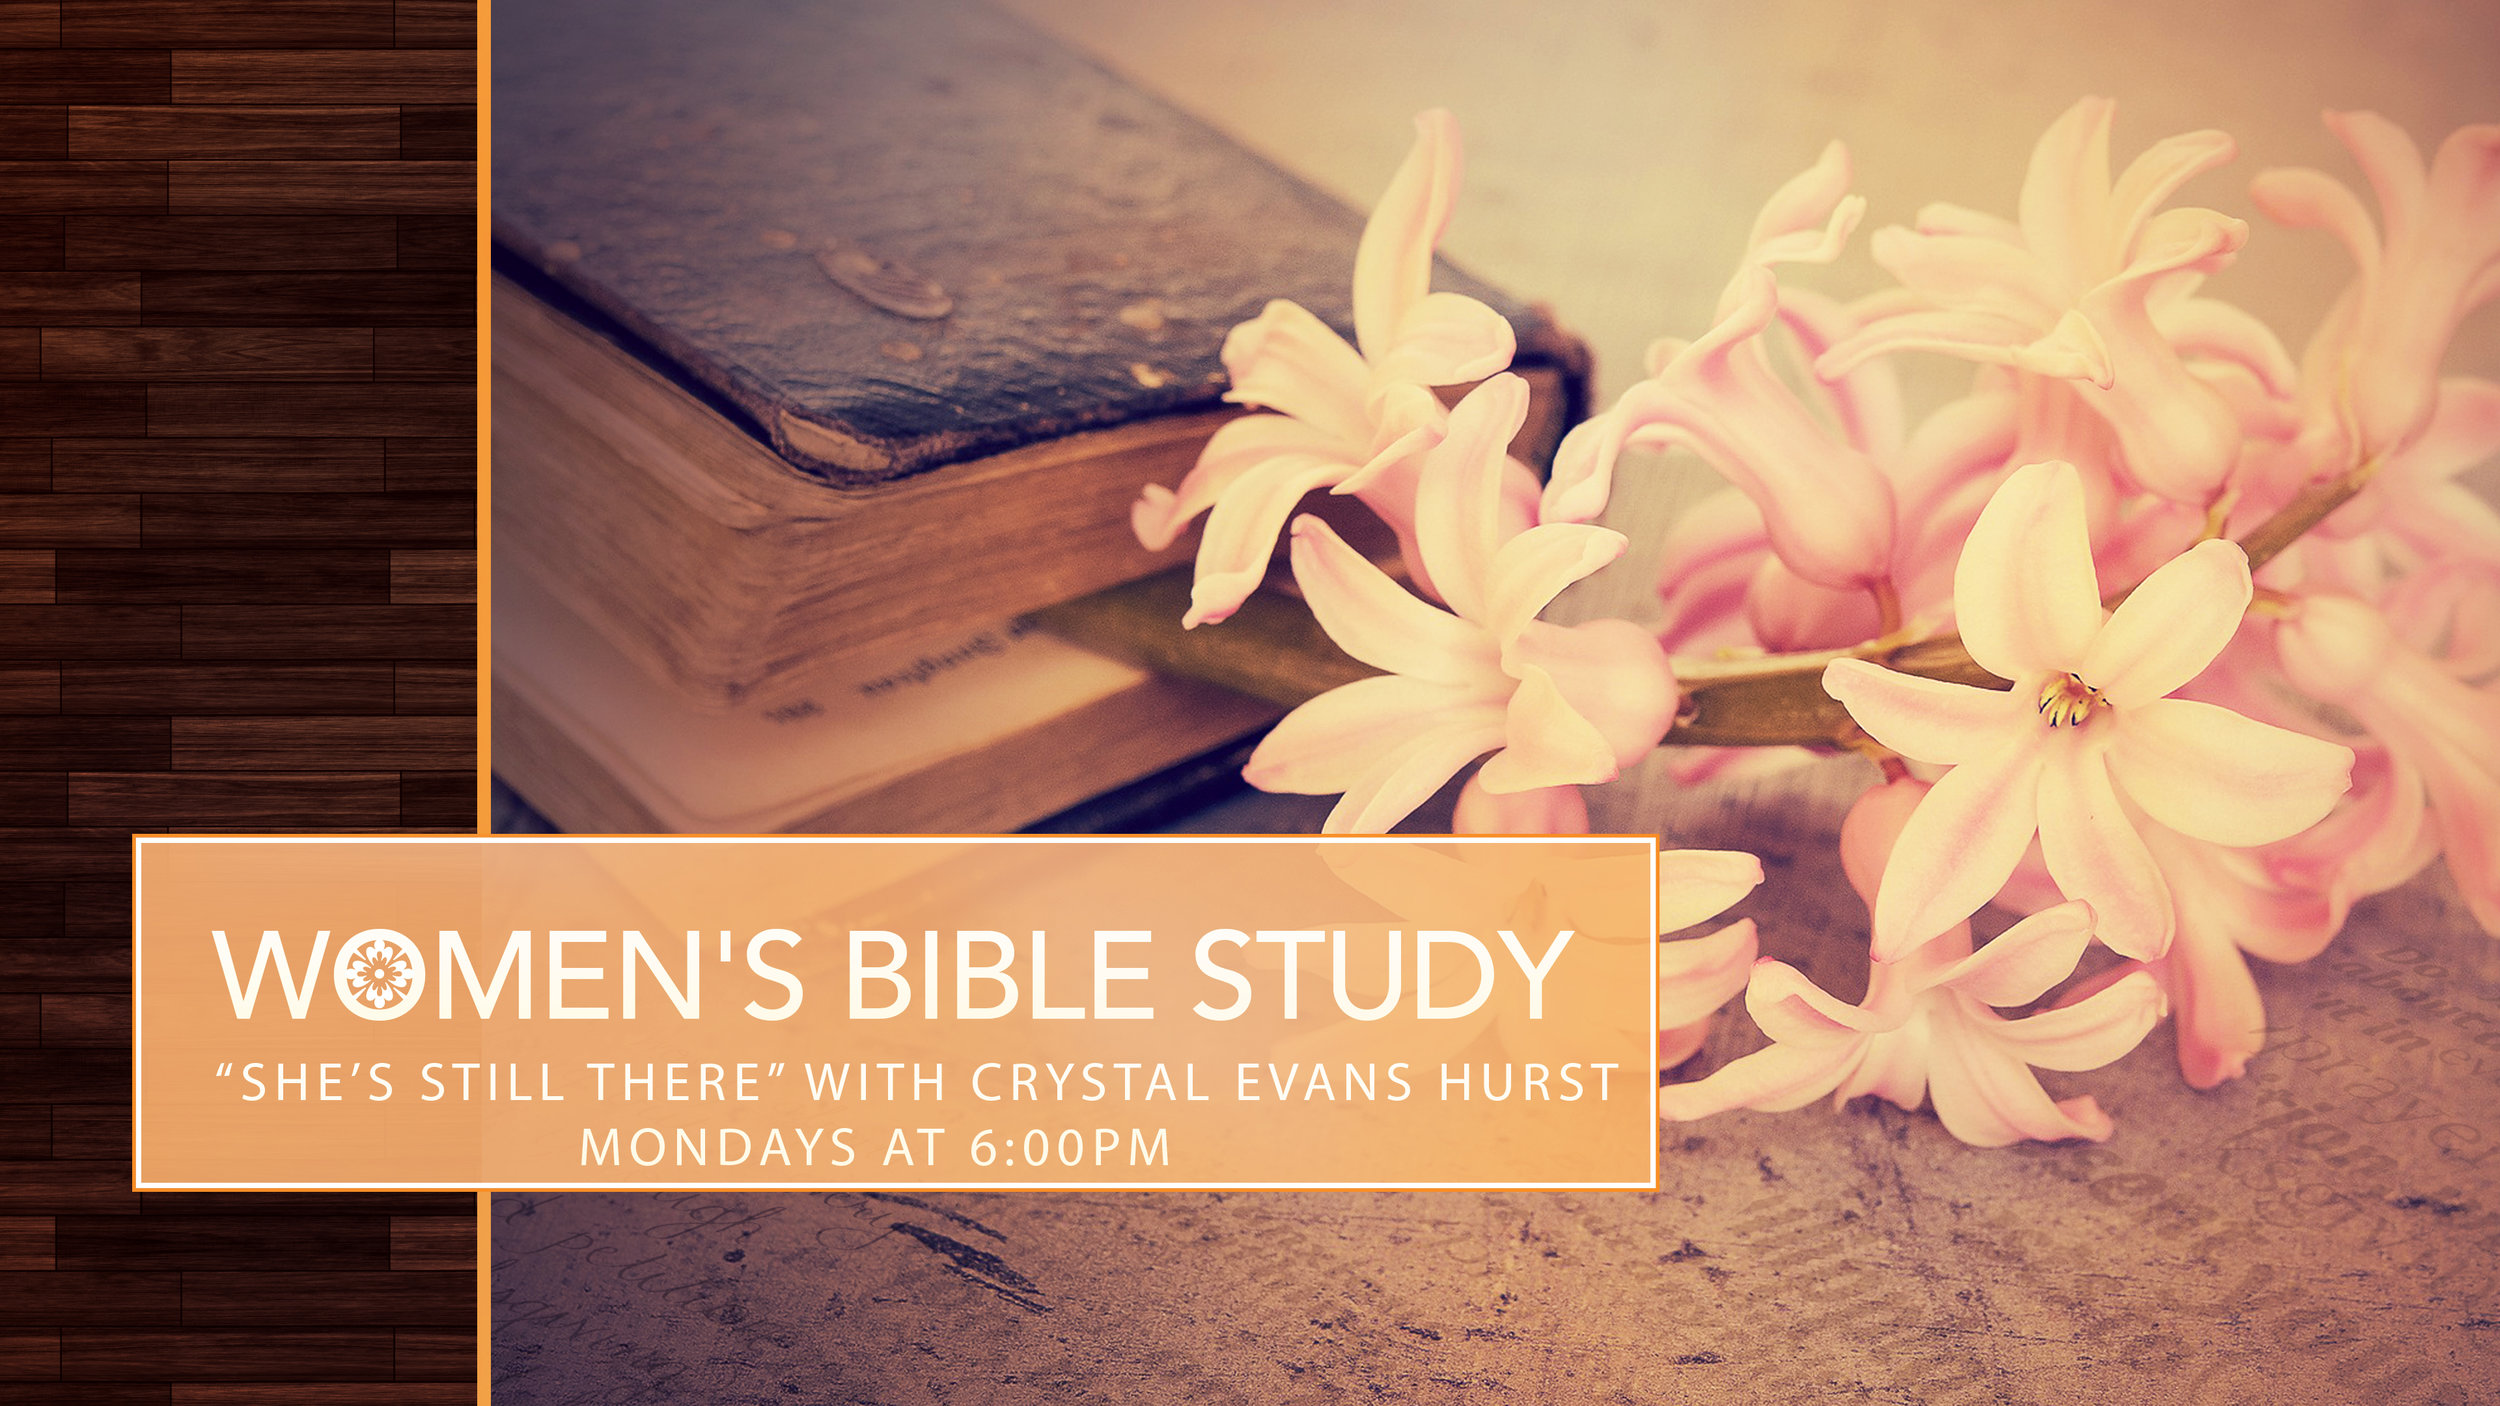 Women's Bible Study hurst.jpg